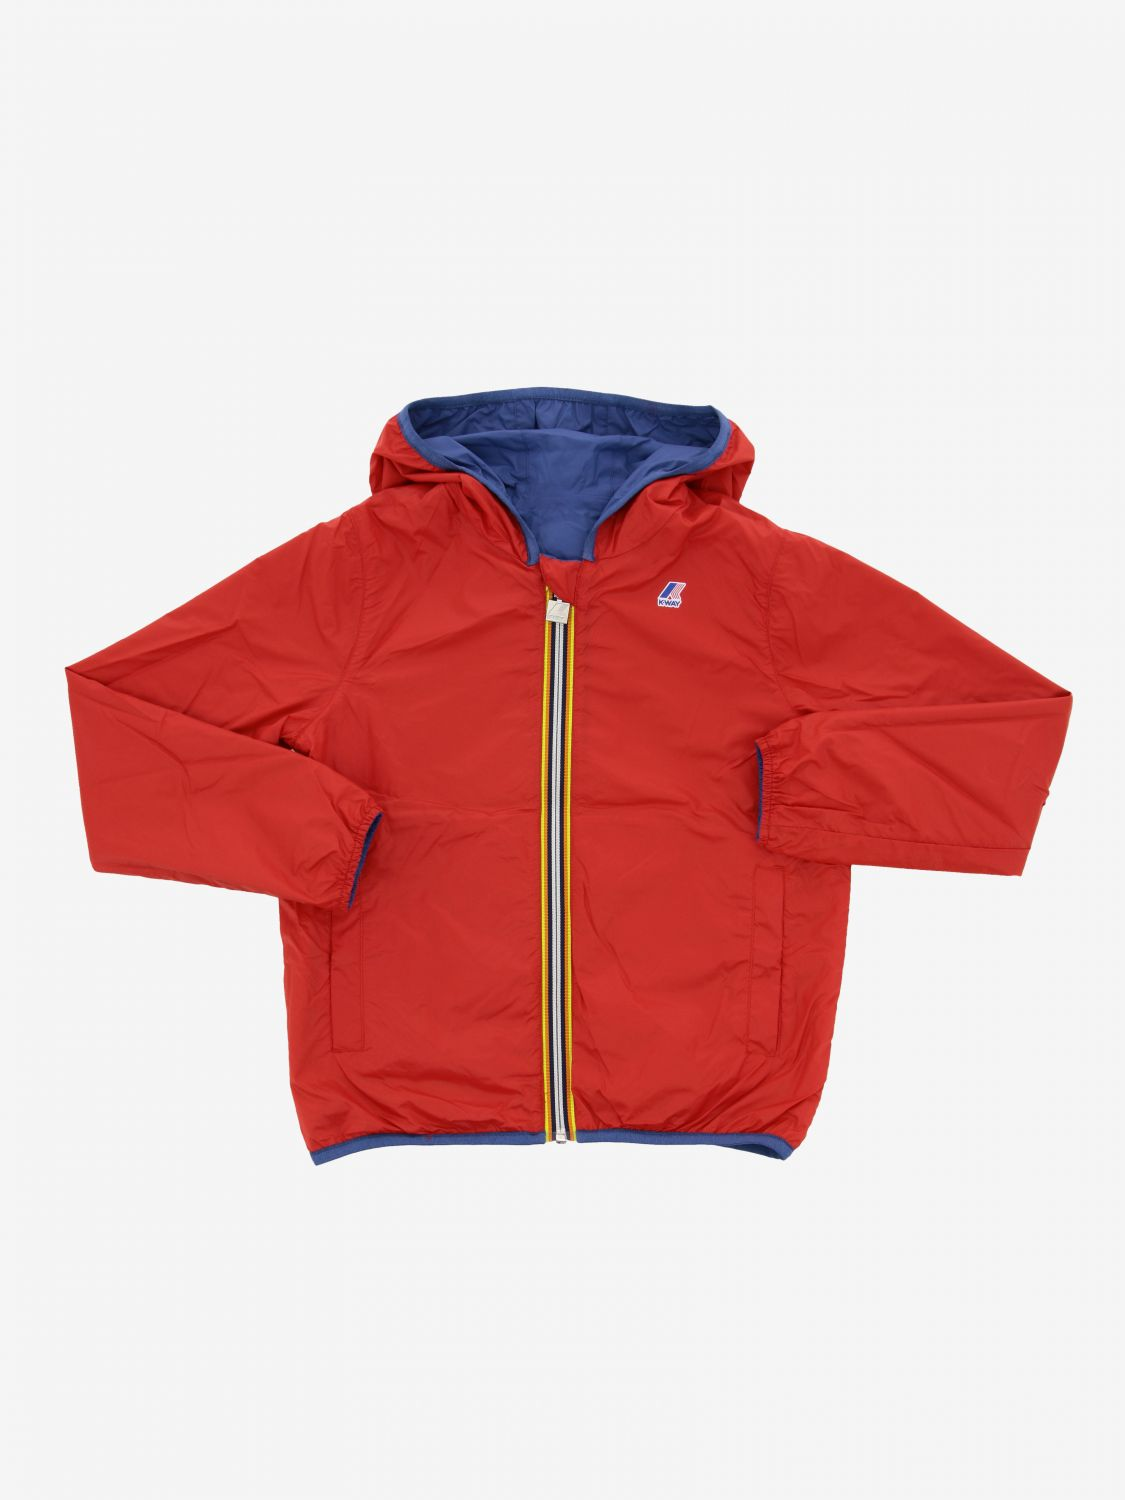 Jacques K-way reversible jacket with hood blue 3